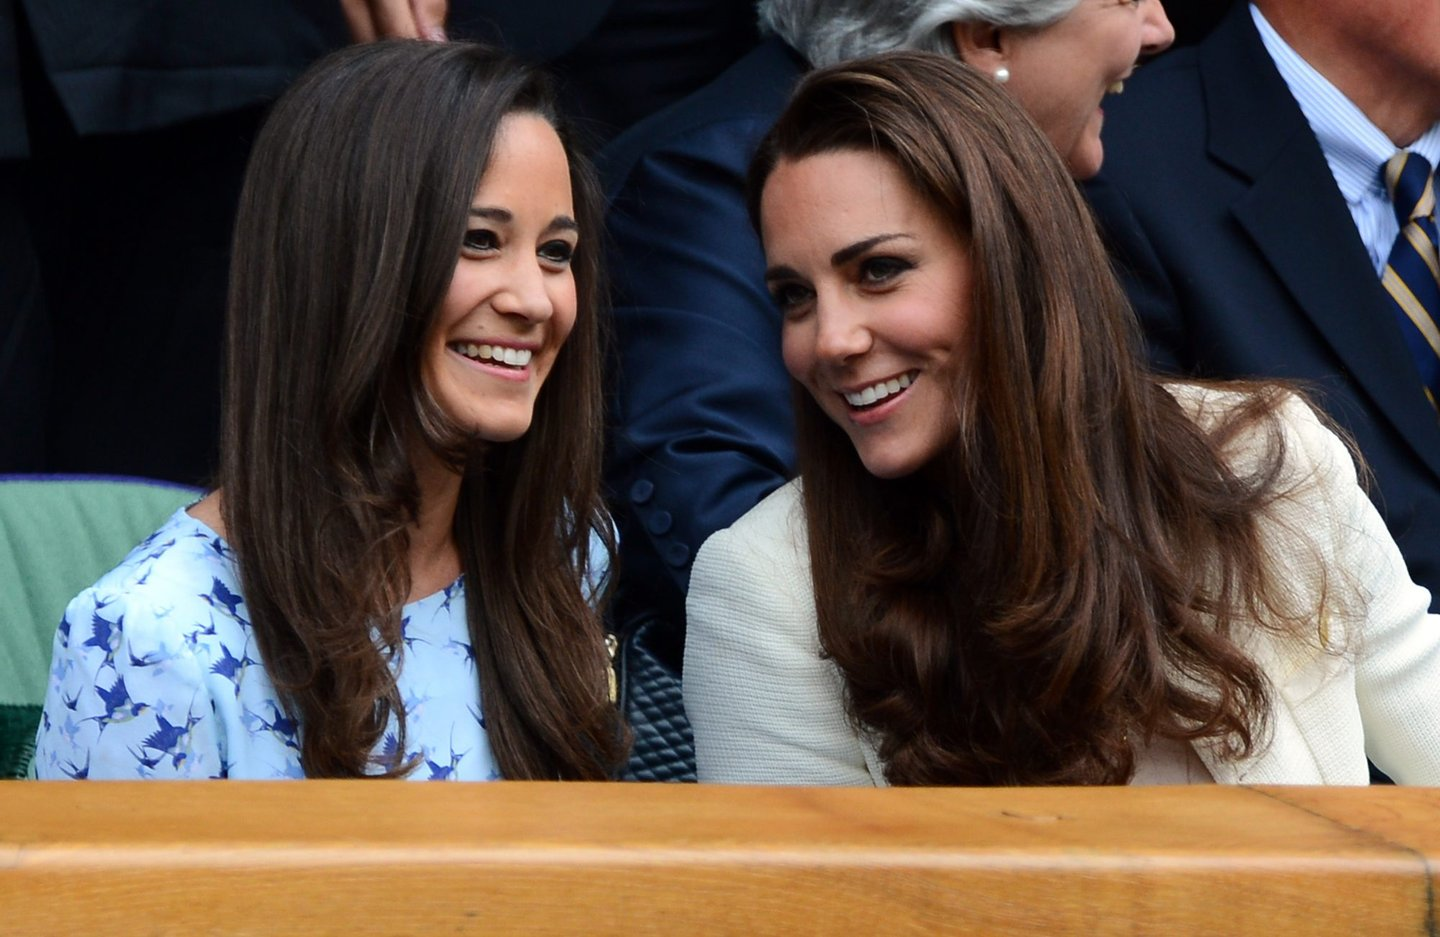 Catherine, Duchess of Cambridge (R) and her sister Pippa Middleton talk in the Royal Box before the men's singles final match between Britain's Andy Murray and Switzerland's Roger Federer on Centre Court on day 13 of the 2012 Wimbledon Championships tennis tournament at the All England Tennis Club in Wimbledon, southwest London, on July 8, 2012. AFP PHOTO / LEON NEAL RESTRICTED TO EDITORIAL USE (Photo credit should read LEON NEAL/AFP/GettyImages)